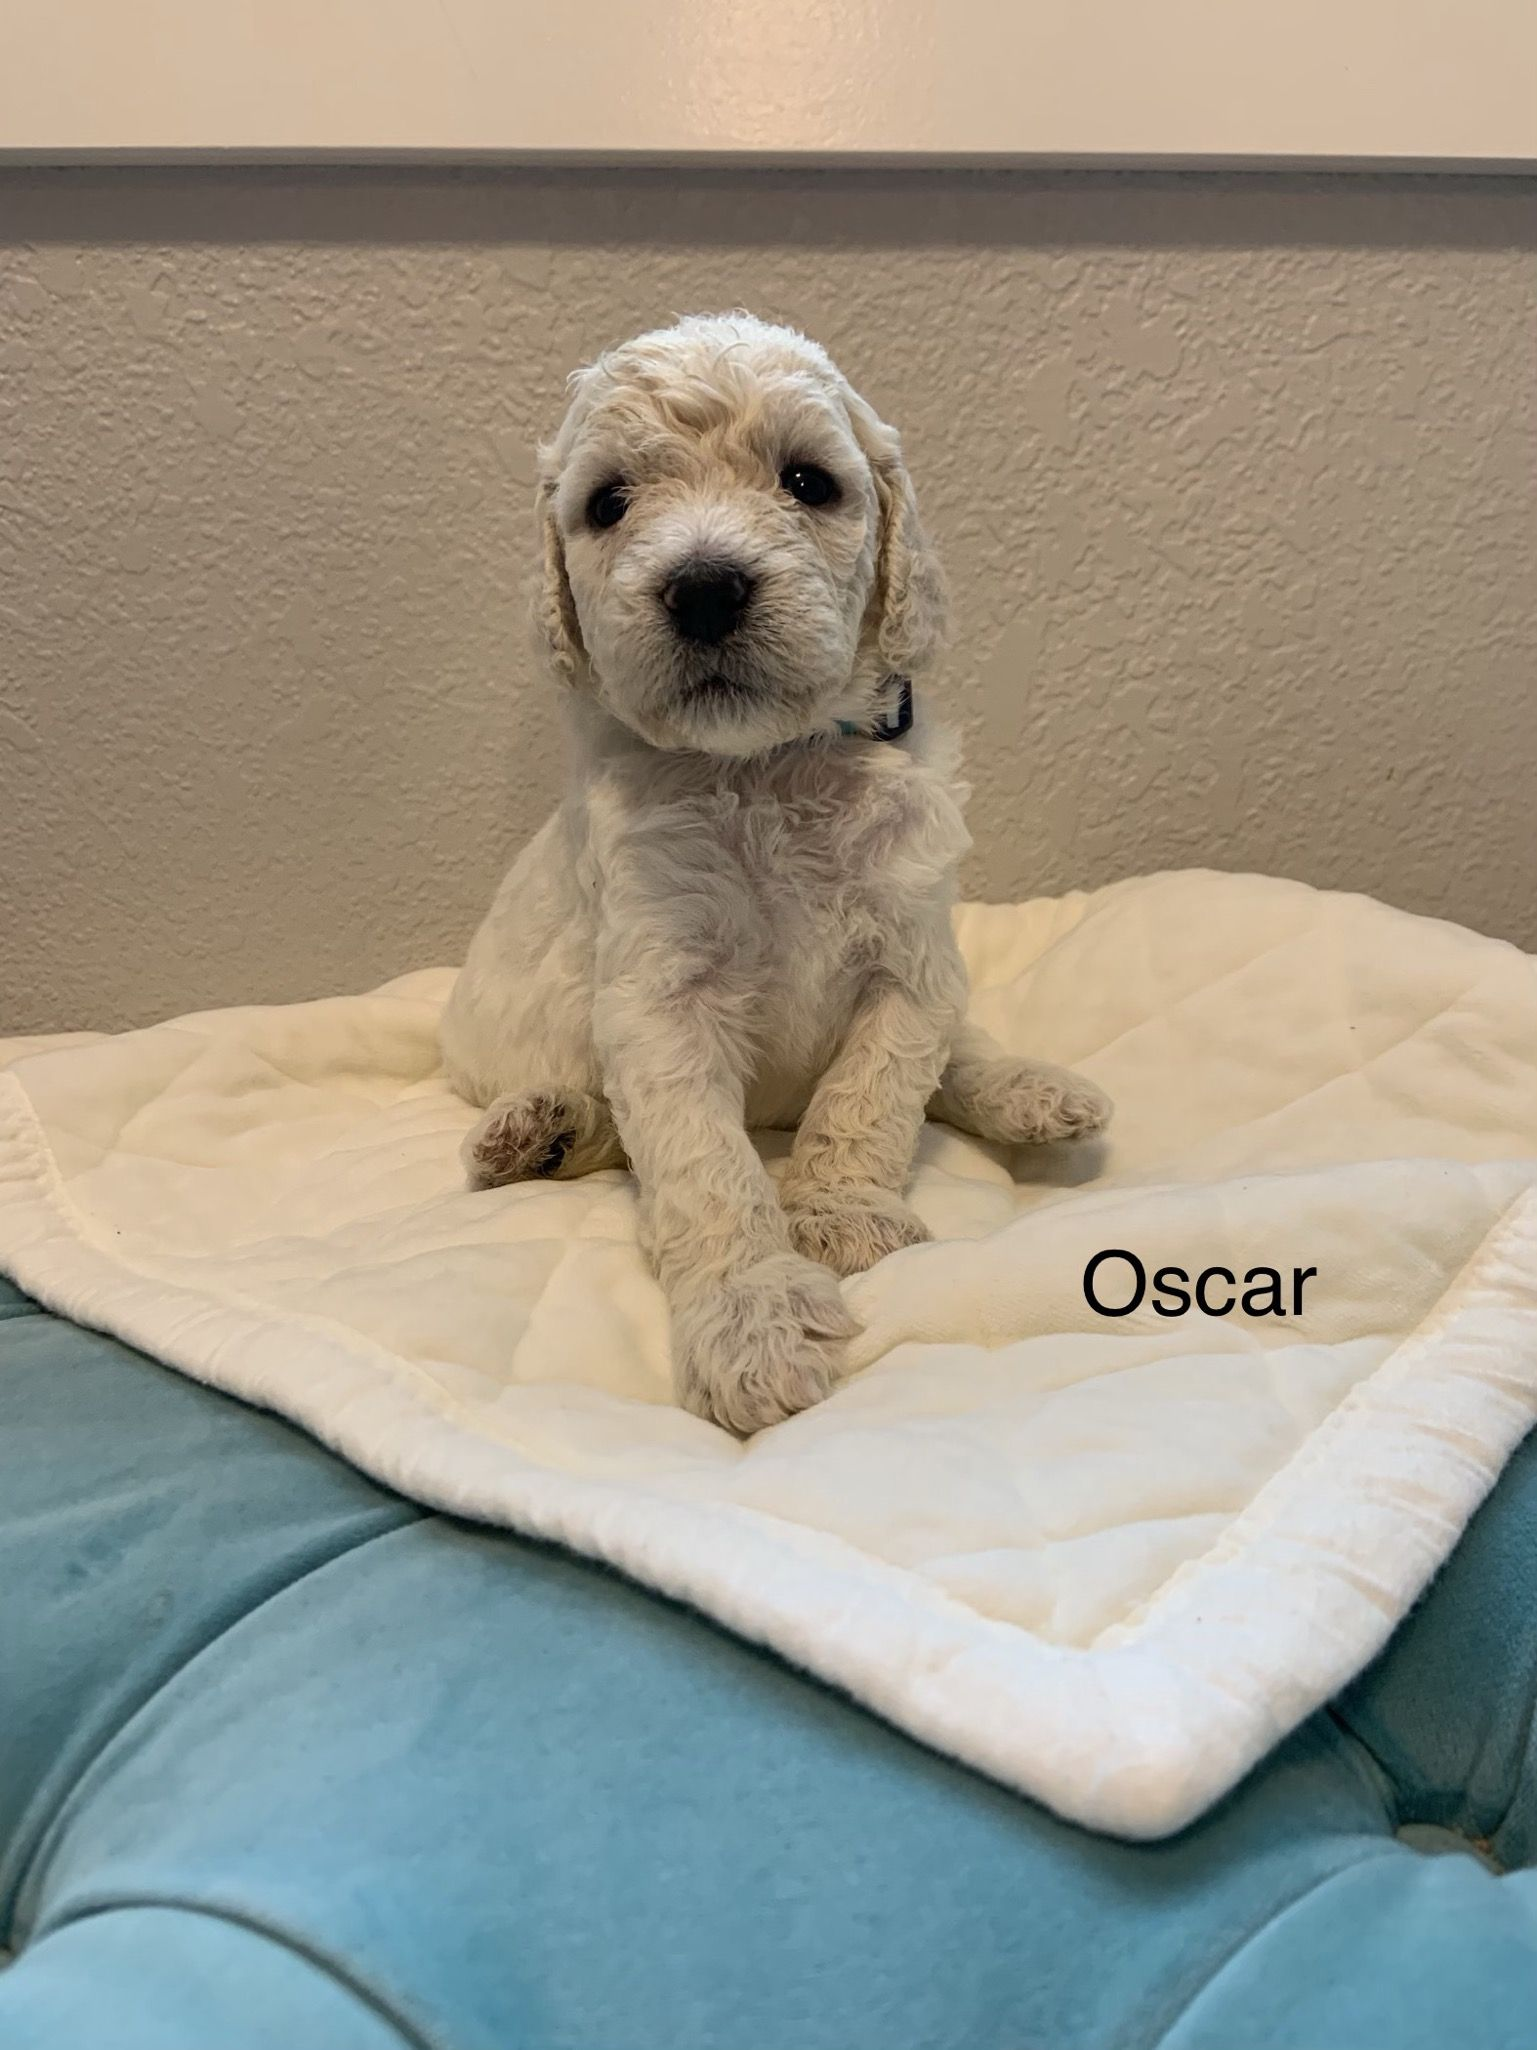 Oscar male Goldendoodle puppy from [Julesburg, Colorado